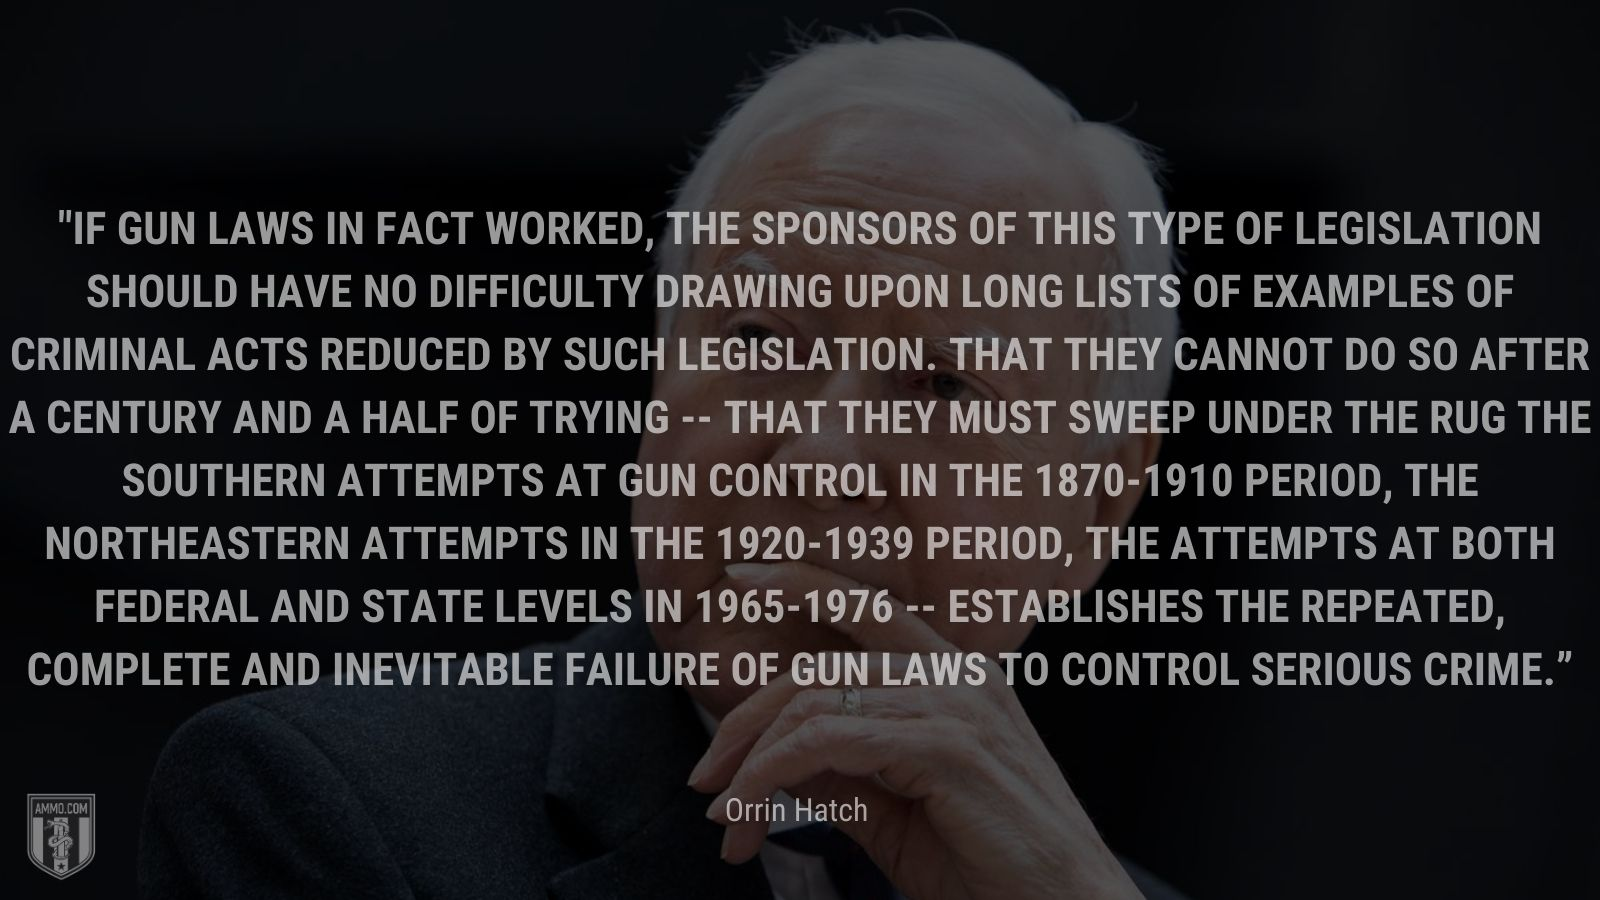 """""""If gun laws in fact worked, the sponsors of this type of legislation should have no difficulty drawing upon long lists of examples of criminal acts reduced by such legislation. That they cannot do so after a century and a half of trying -- that they must sweep under the rug the southern attempts at gun control in the 1870-1910 period, the northeastern attempts in the 1920-1939 period, the attempts at both Federal and State levels in 1965-1976 -- establishes the repeated, complete and inevitable failure of gun laws to control serious crime."""" - Orrin Hatch"""